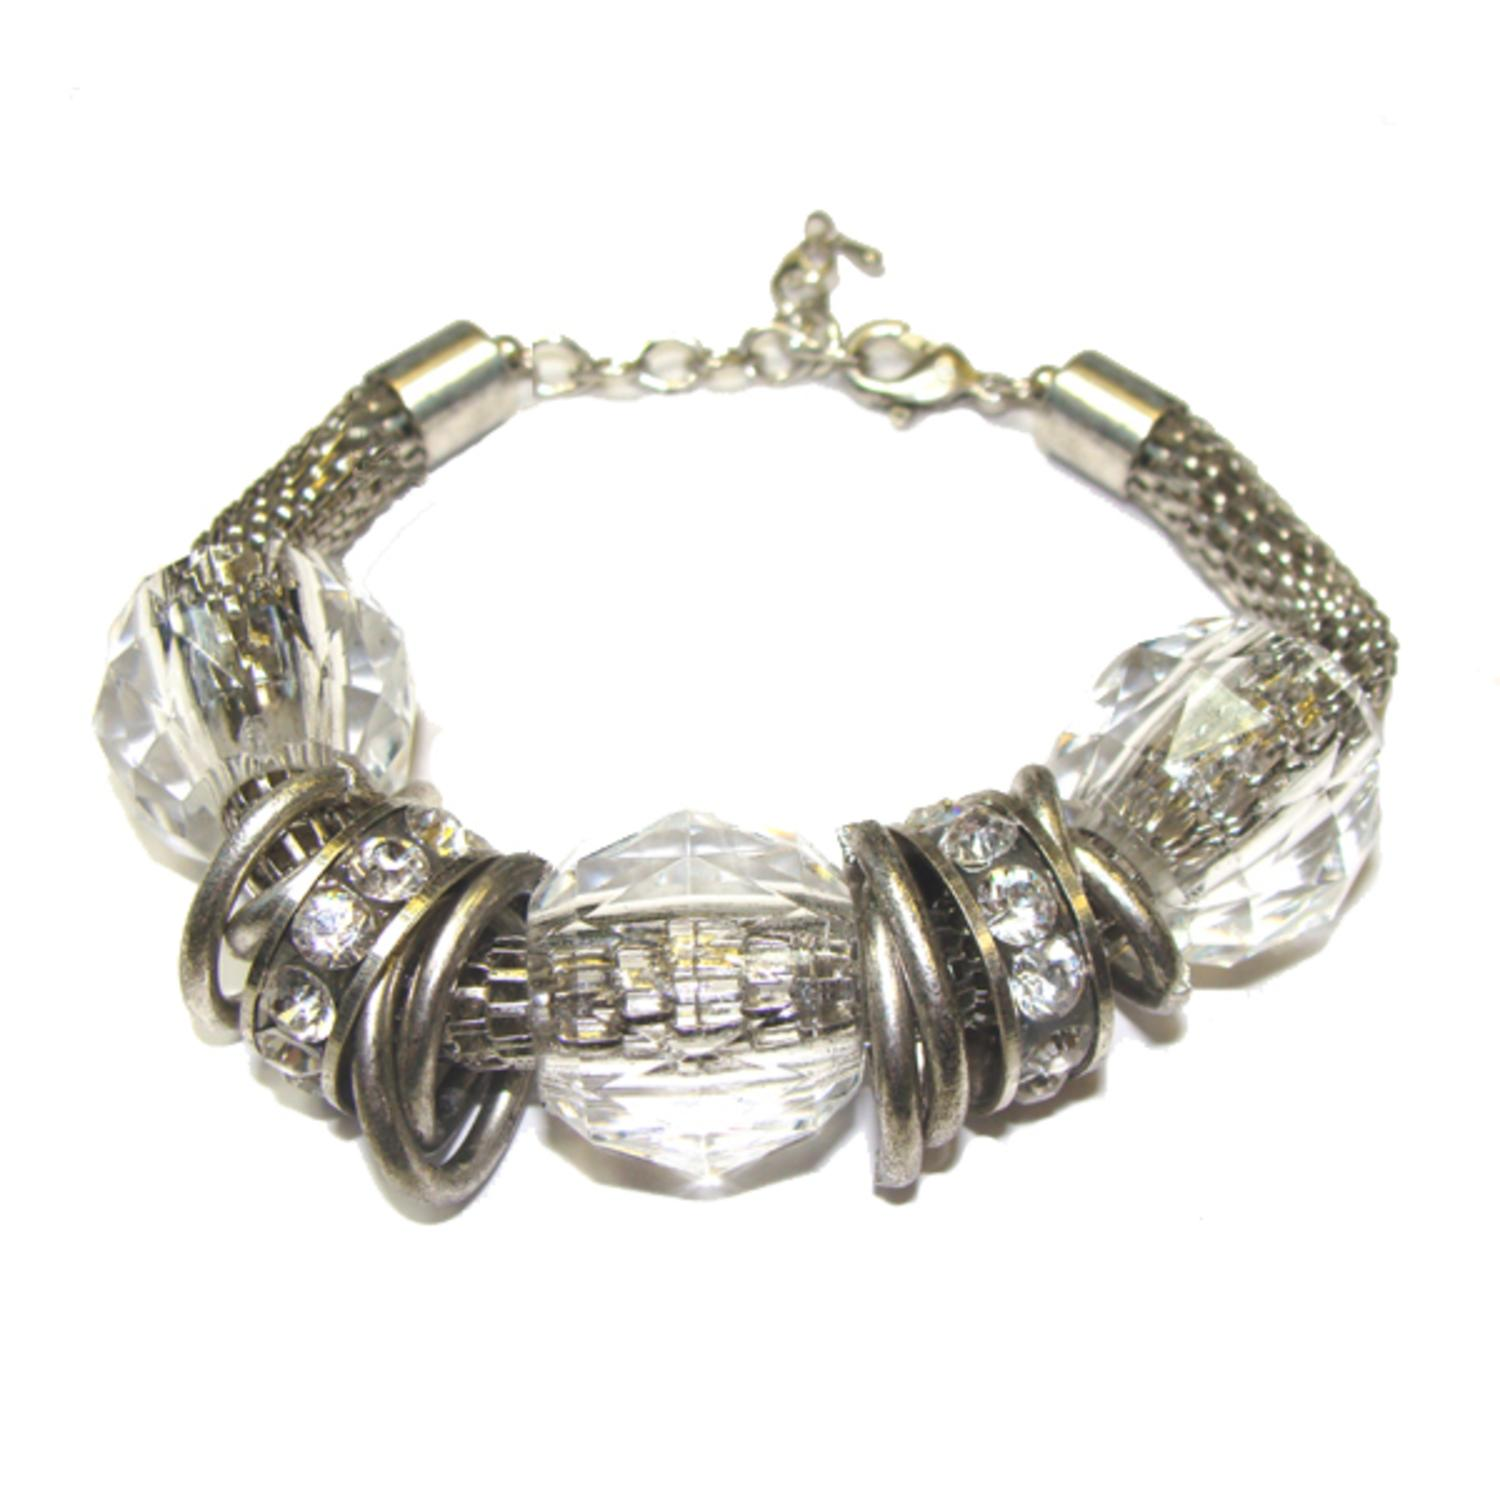 Clear Faceted Ball, Crystal and Antique-Silvertoned Chain Mail Jewelry Bracelet